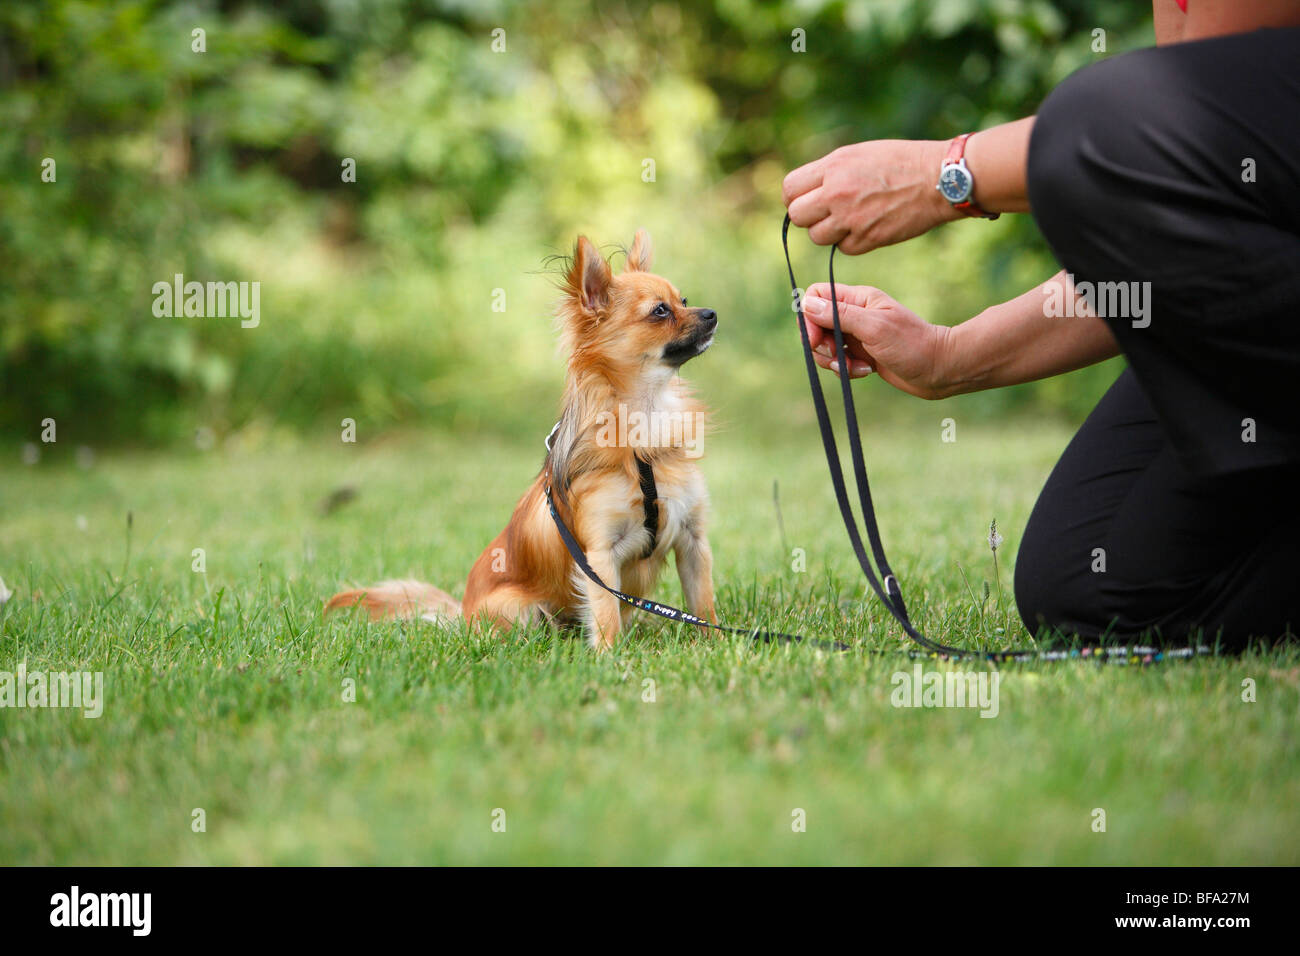 Chihuahua (Canis lupus f. familiaris), leashed individual sitting in a meadow in front of a man, Germany Stock Photo